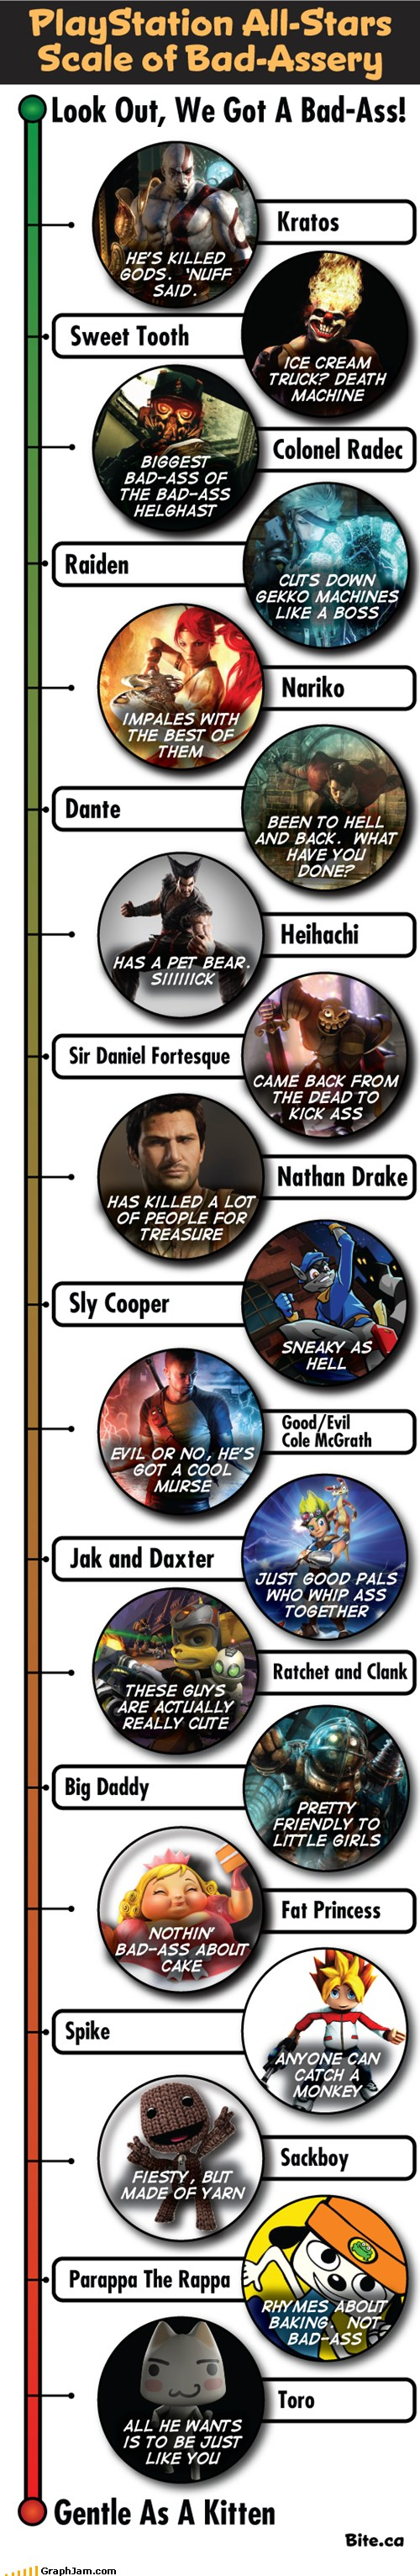 PlayStation All-Stars Scale of Bad-Assery